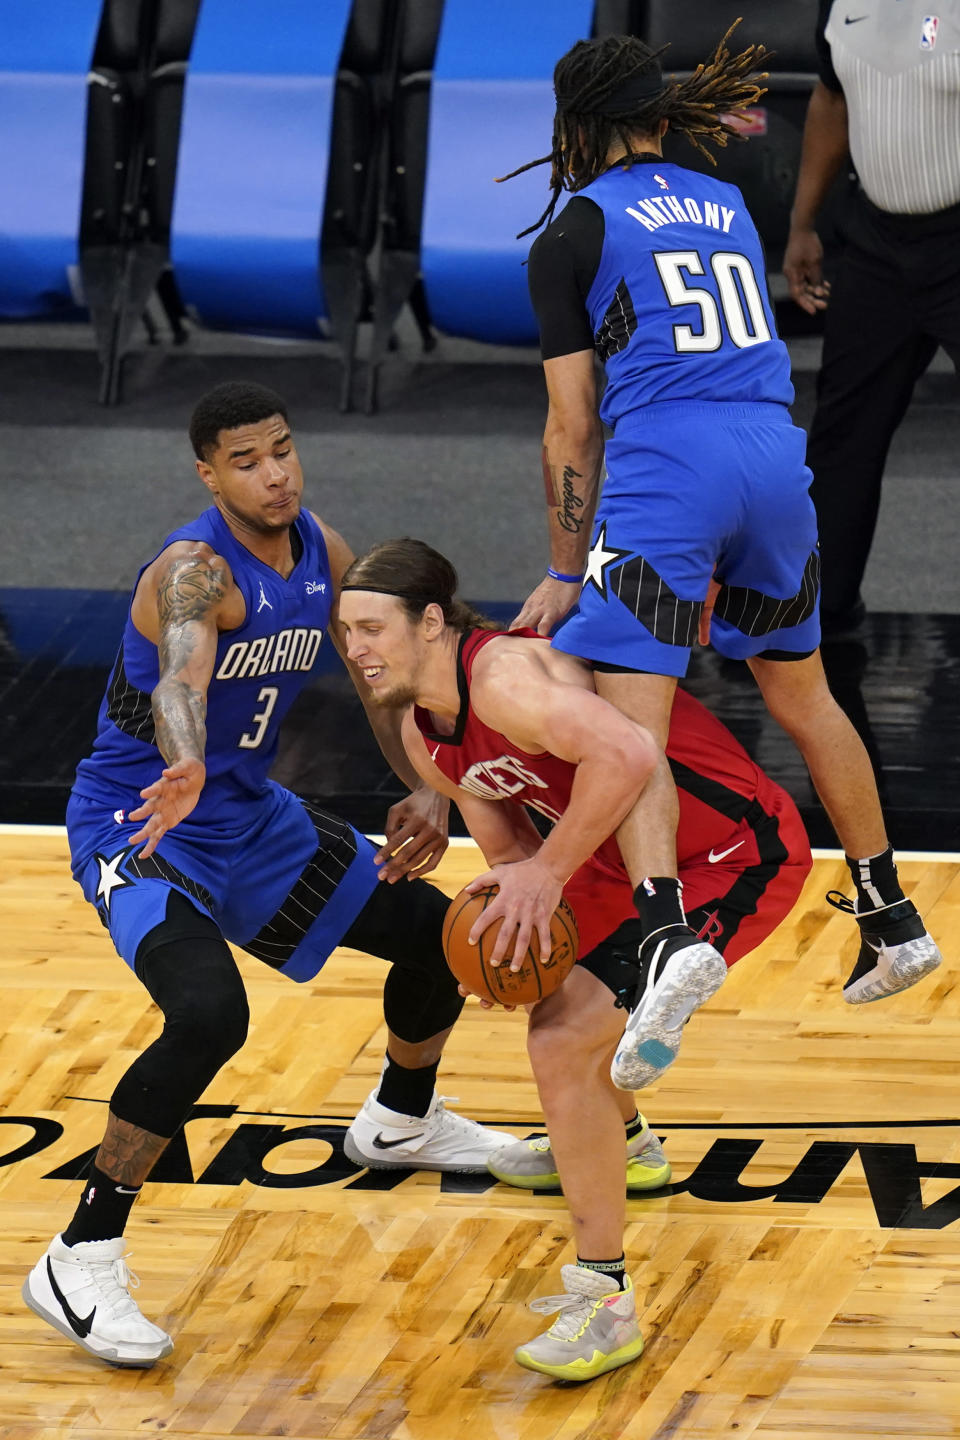 Orlando Magic guard Cole Anthony (50) fouls Houston Rockets forward Kelly Olynyk, center, in front of Orlando Magic forward Chuma Okeke (3) during the closing moments of the second half of an NBA basketball game, Sunday, April 18, 2021, in Orlando, Fla. (AP Photo/John Raoux)